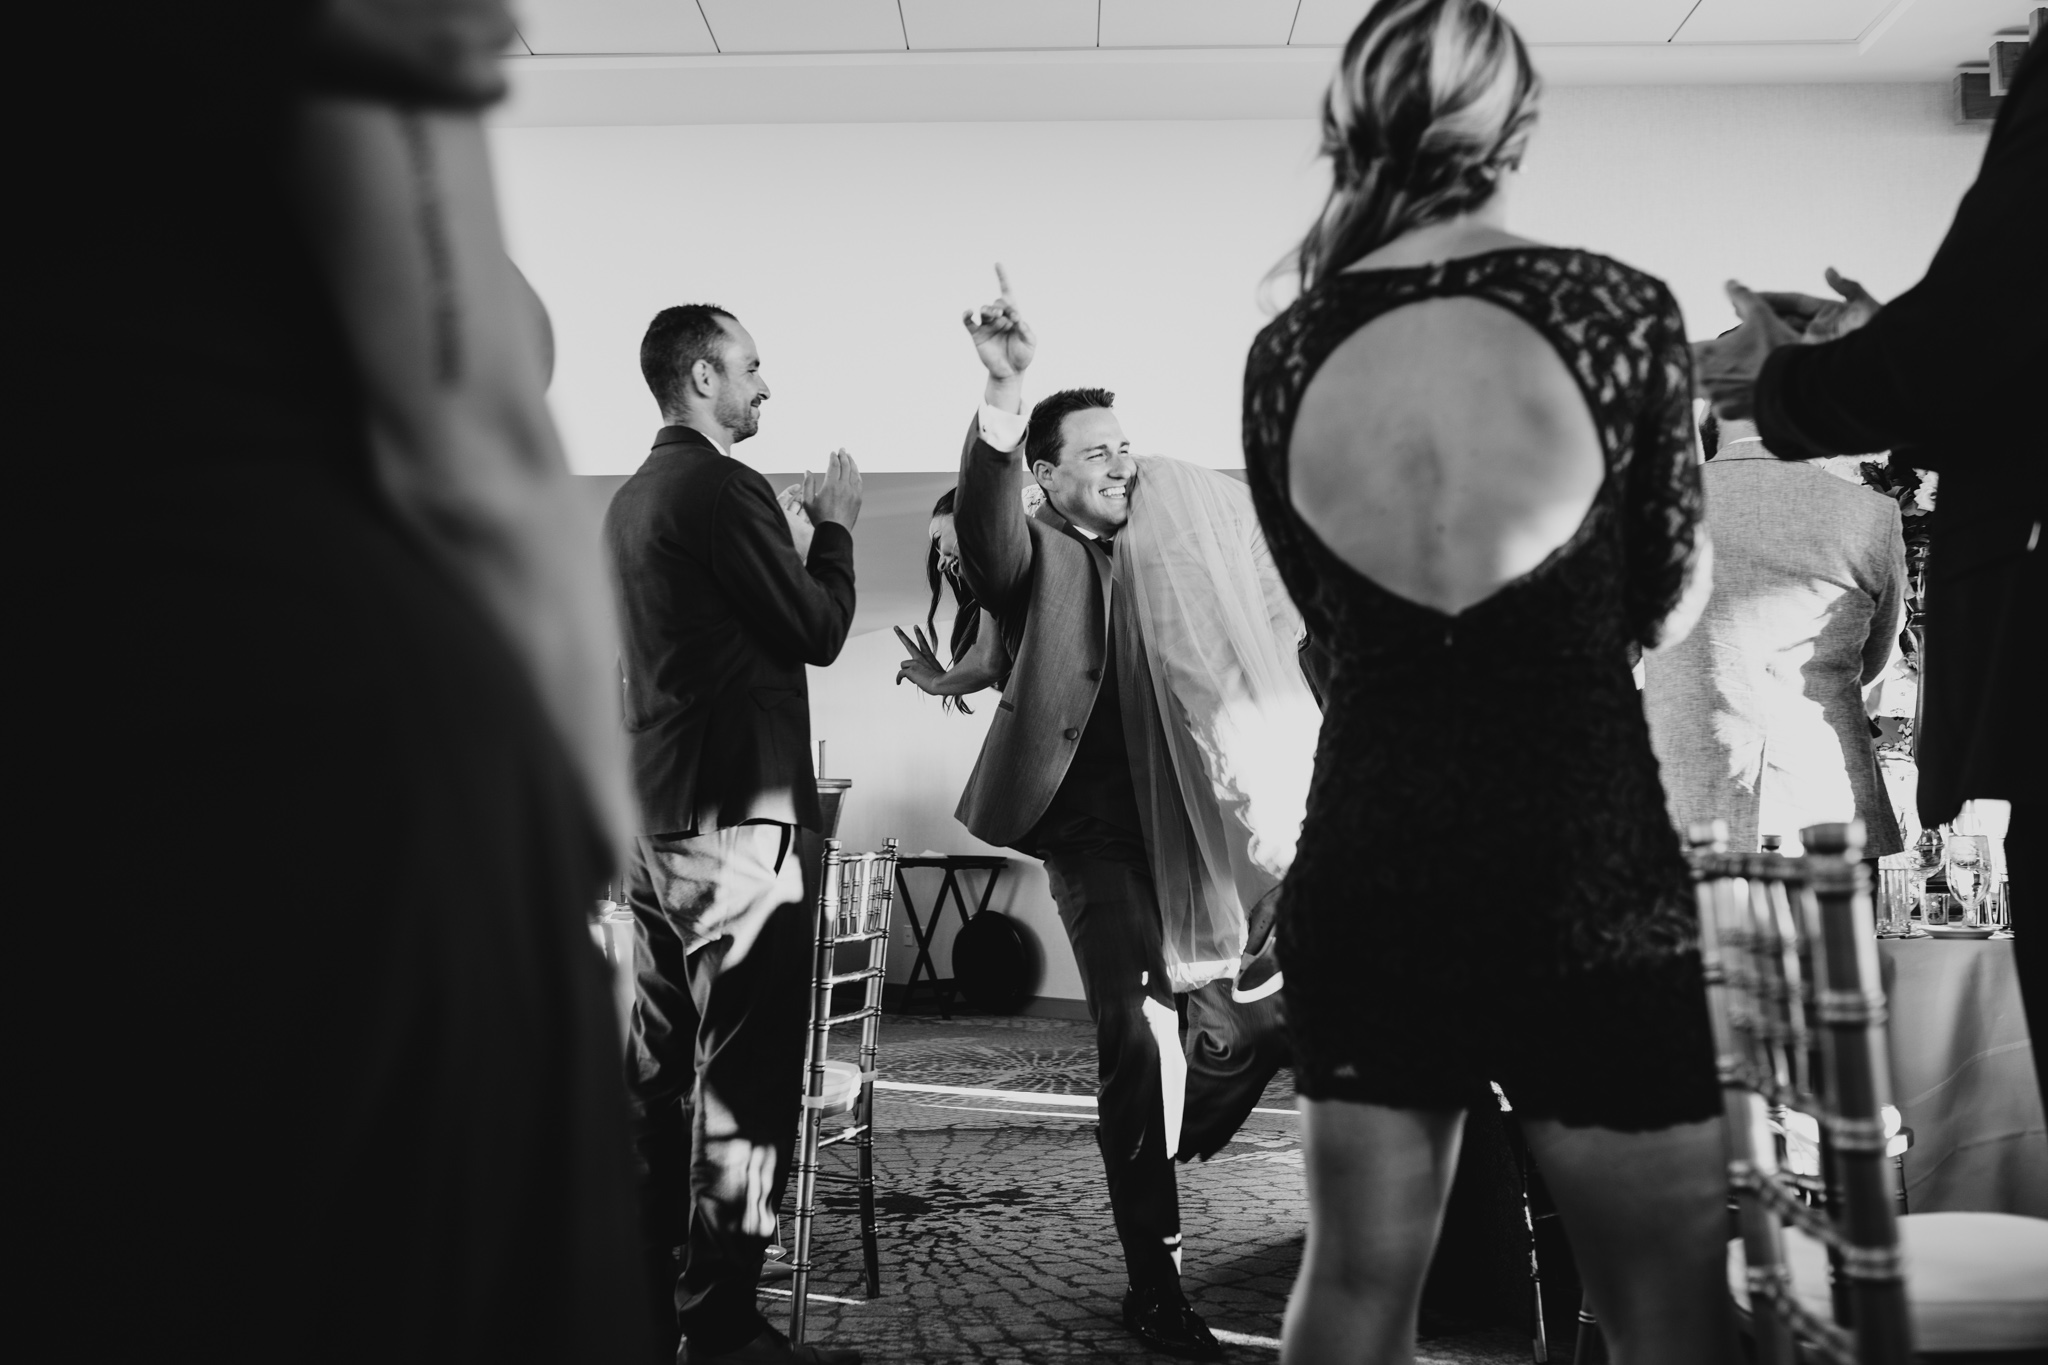 615-WEB-Jonathan-Kuhn-Photography-Lauren-Evan-Wedding-4452.jpg